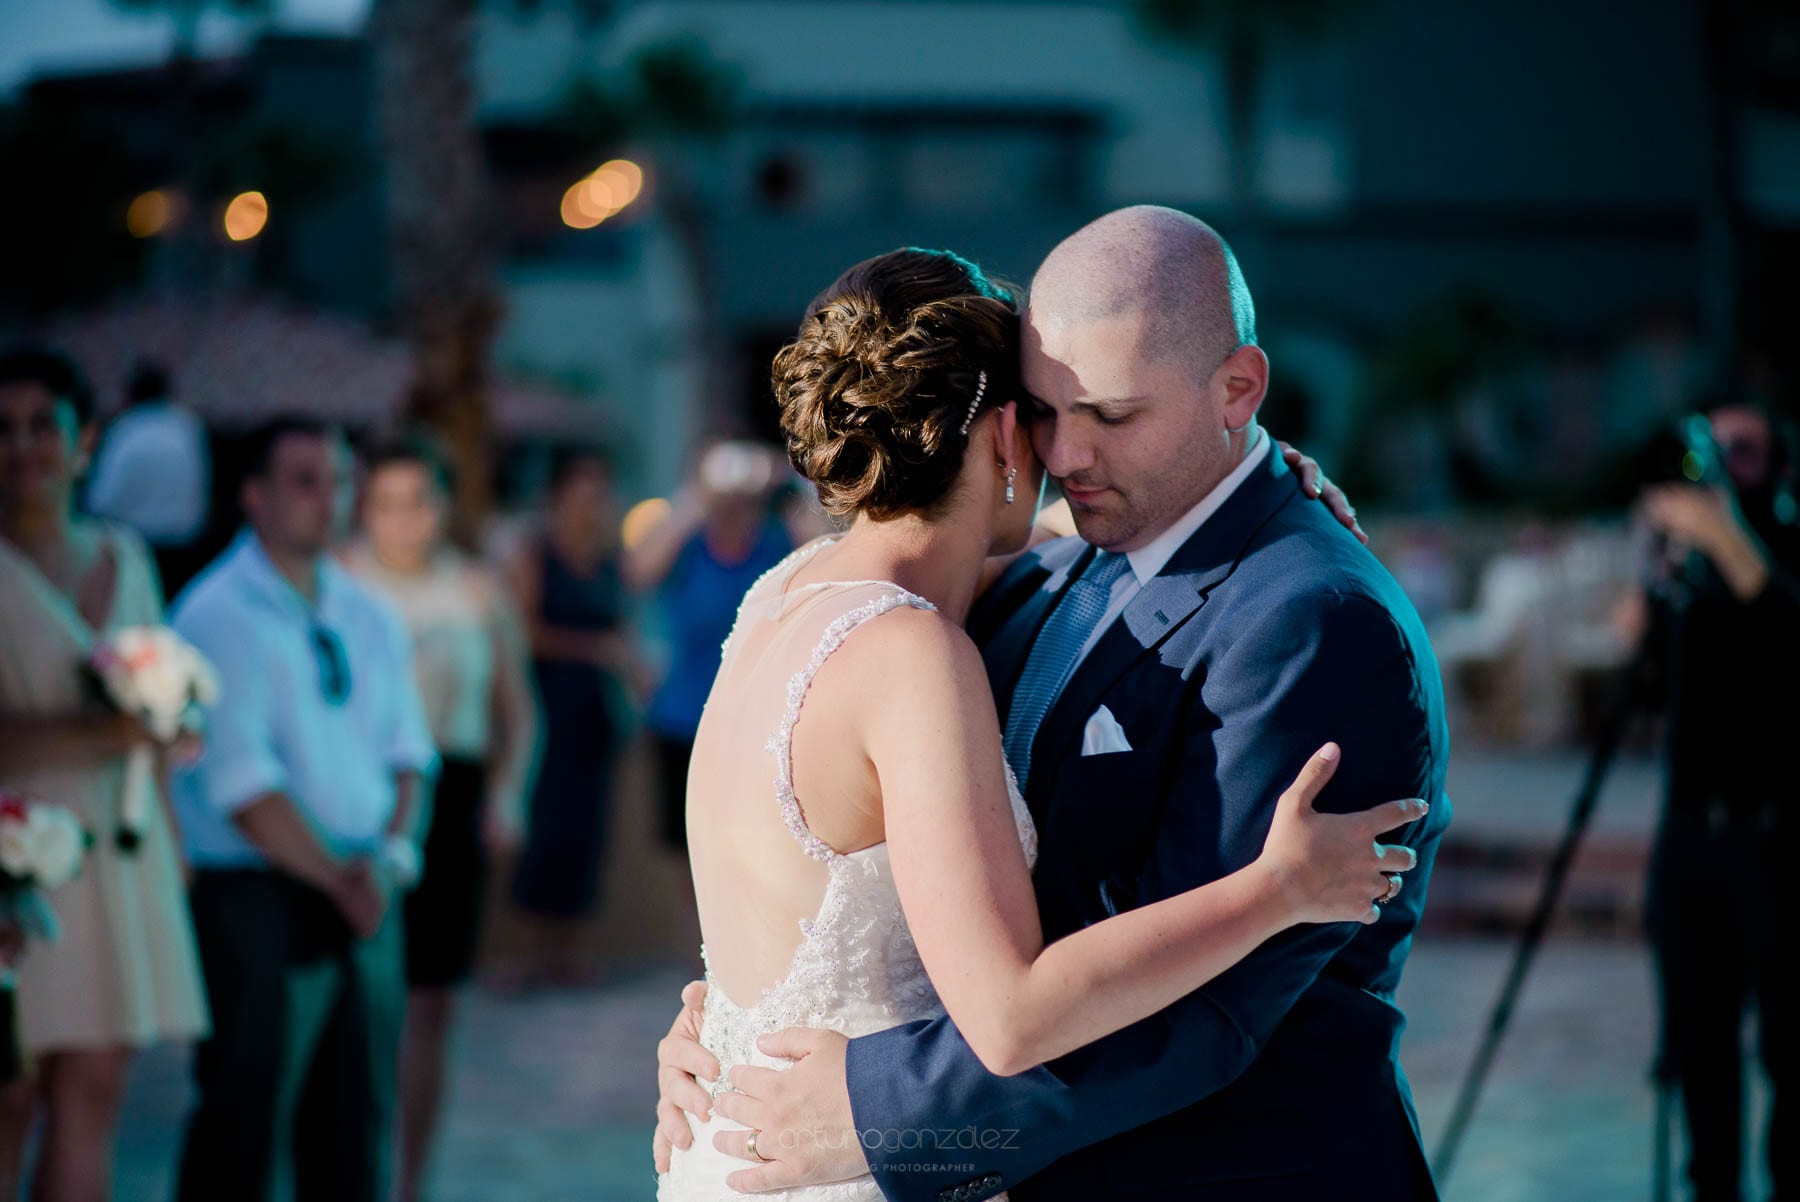 wedding-photos-pueblo-bonito-sunset-beach-4629